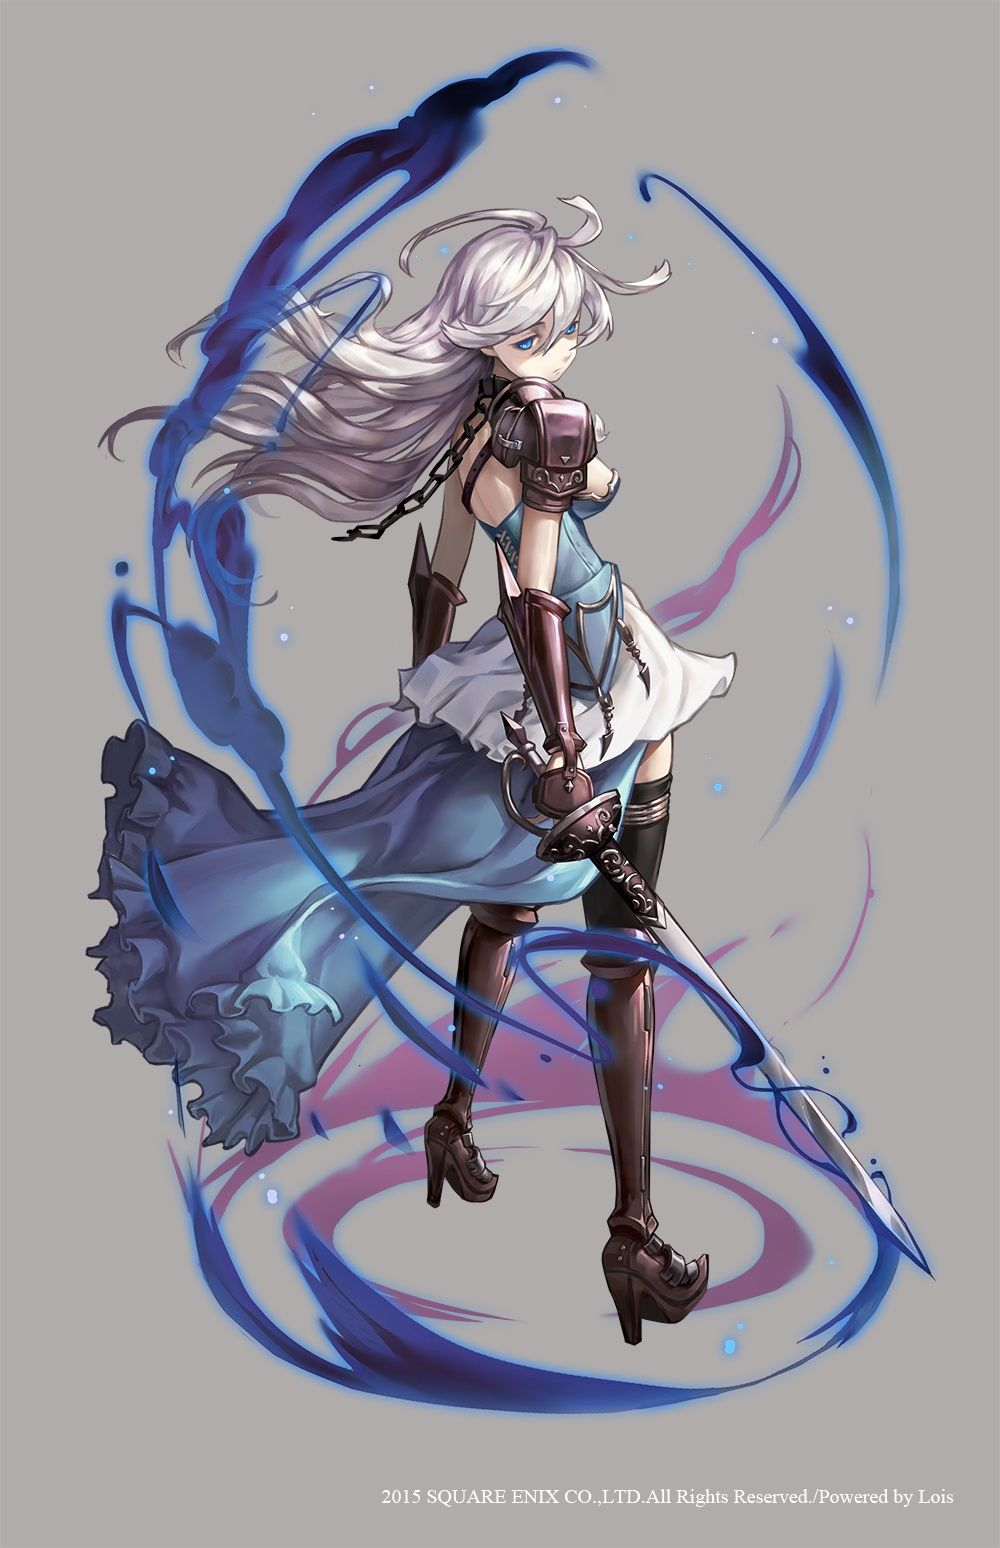 Pin By Hightower On Anime Art Character Design Character Art Fantasy Character Design